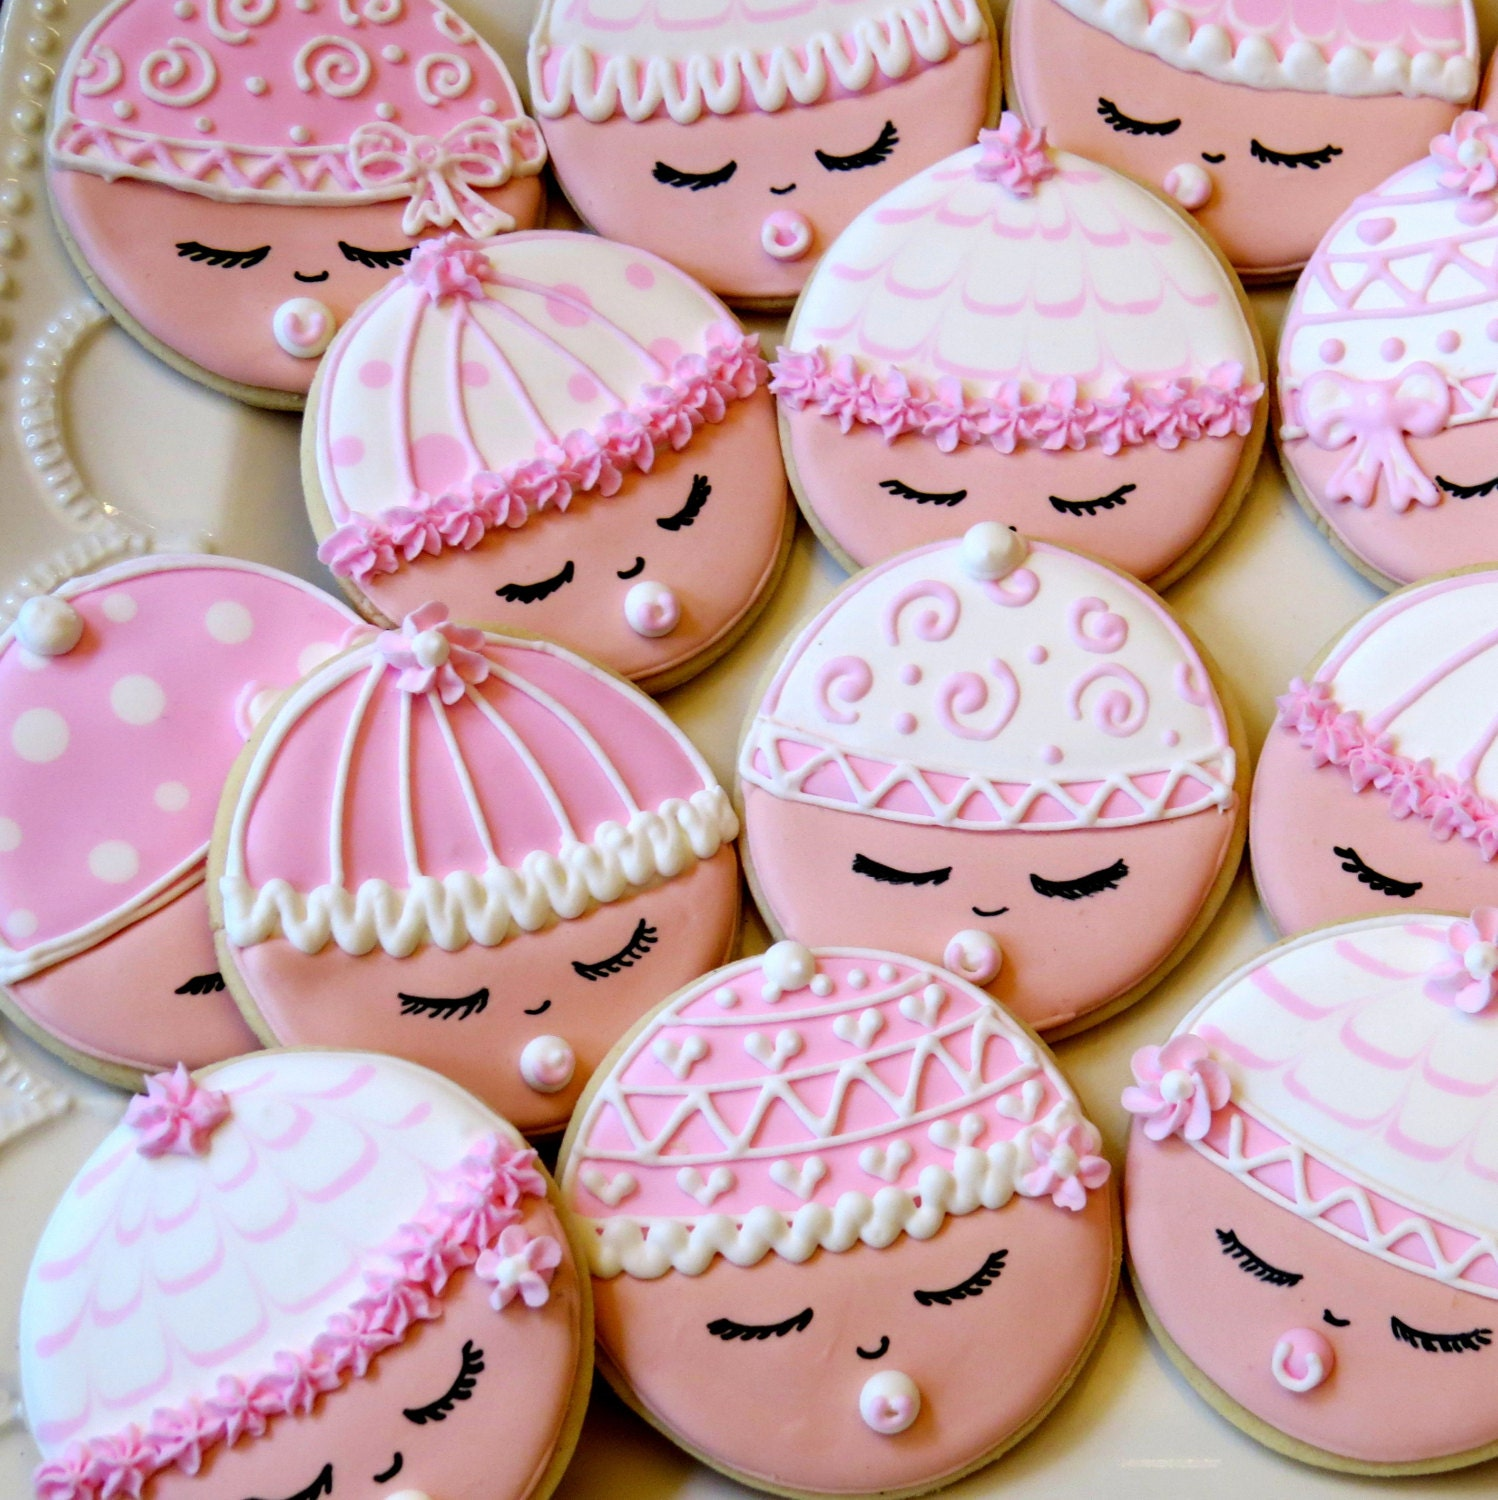 items similar to 12 custom baby shower favors sugar cookies on etsy